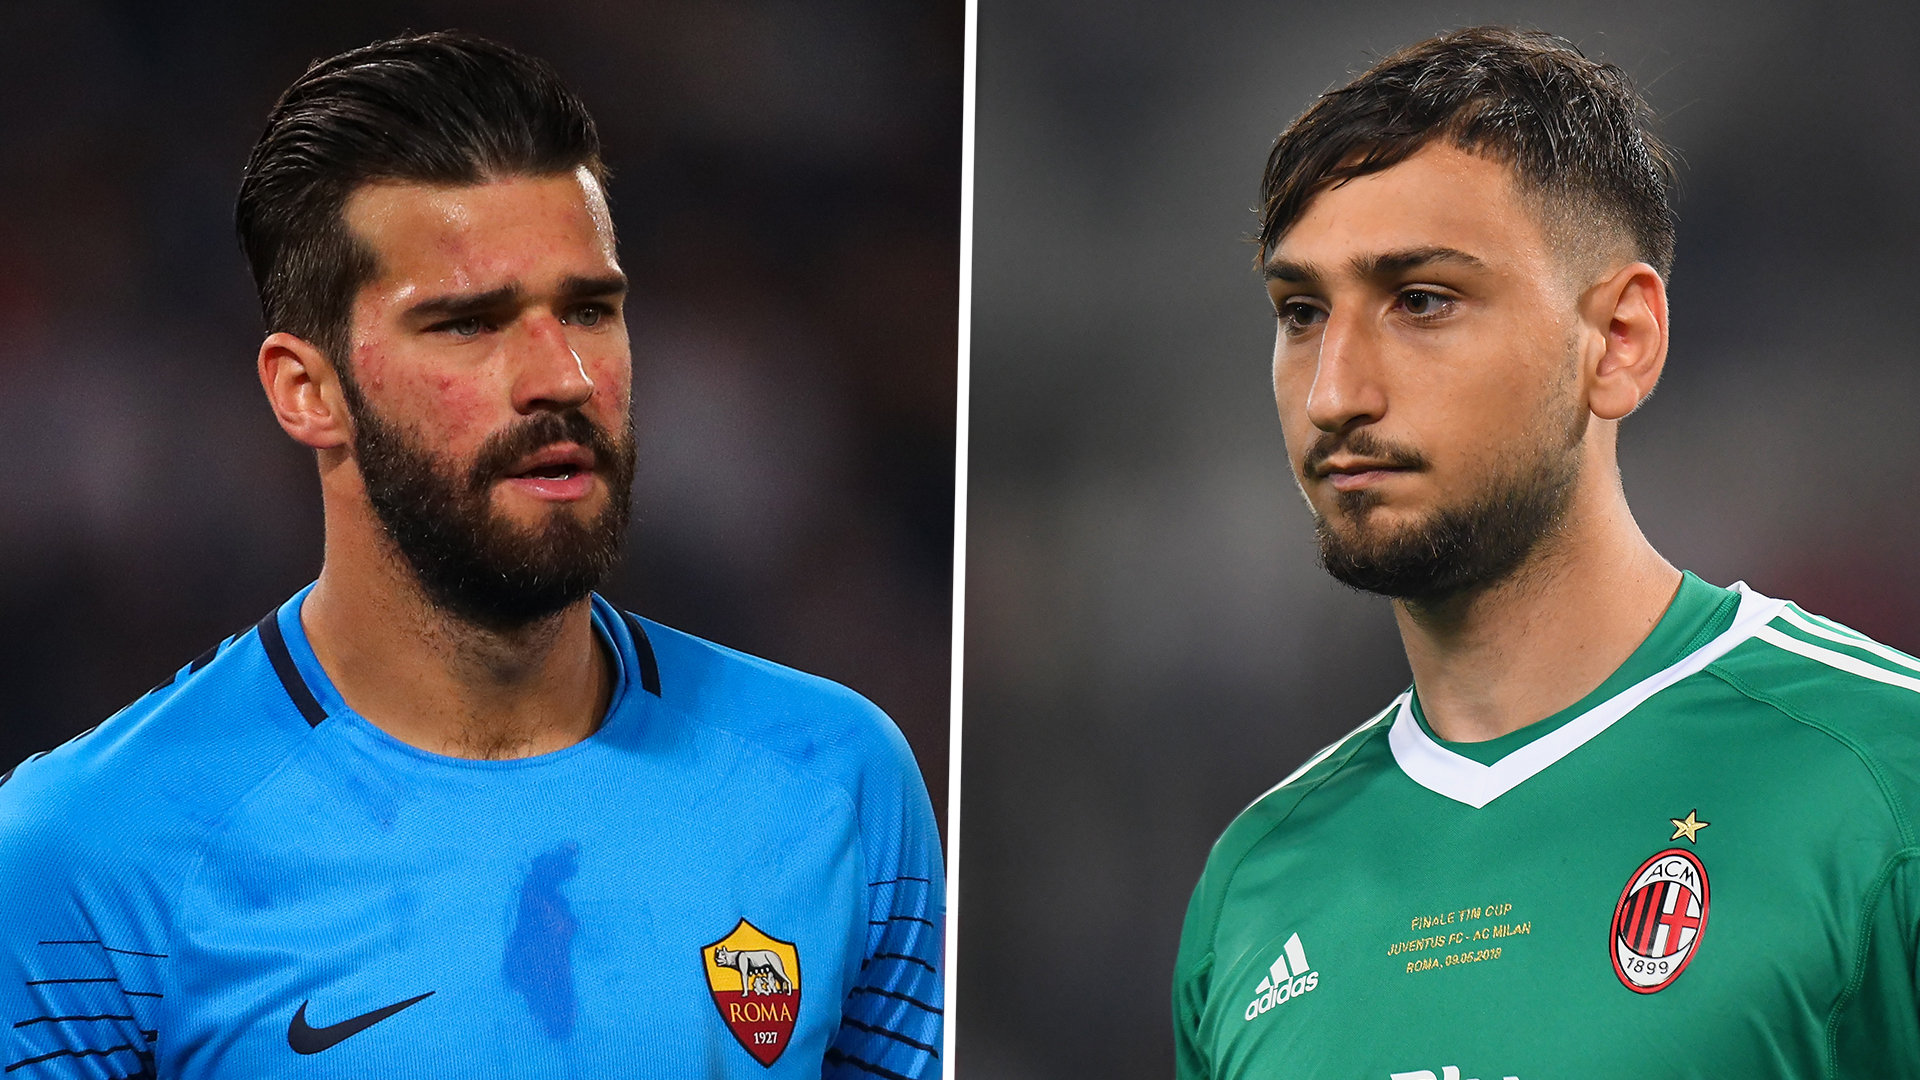 Maurizio Sarri Calls Liverpool Target Alisson To Put Forward Chelsea's Case